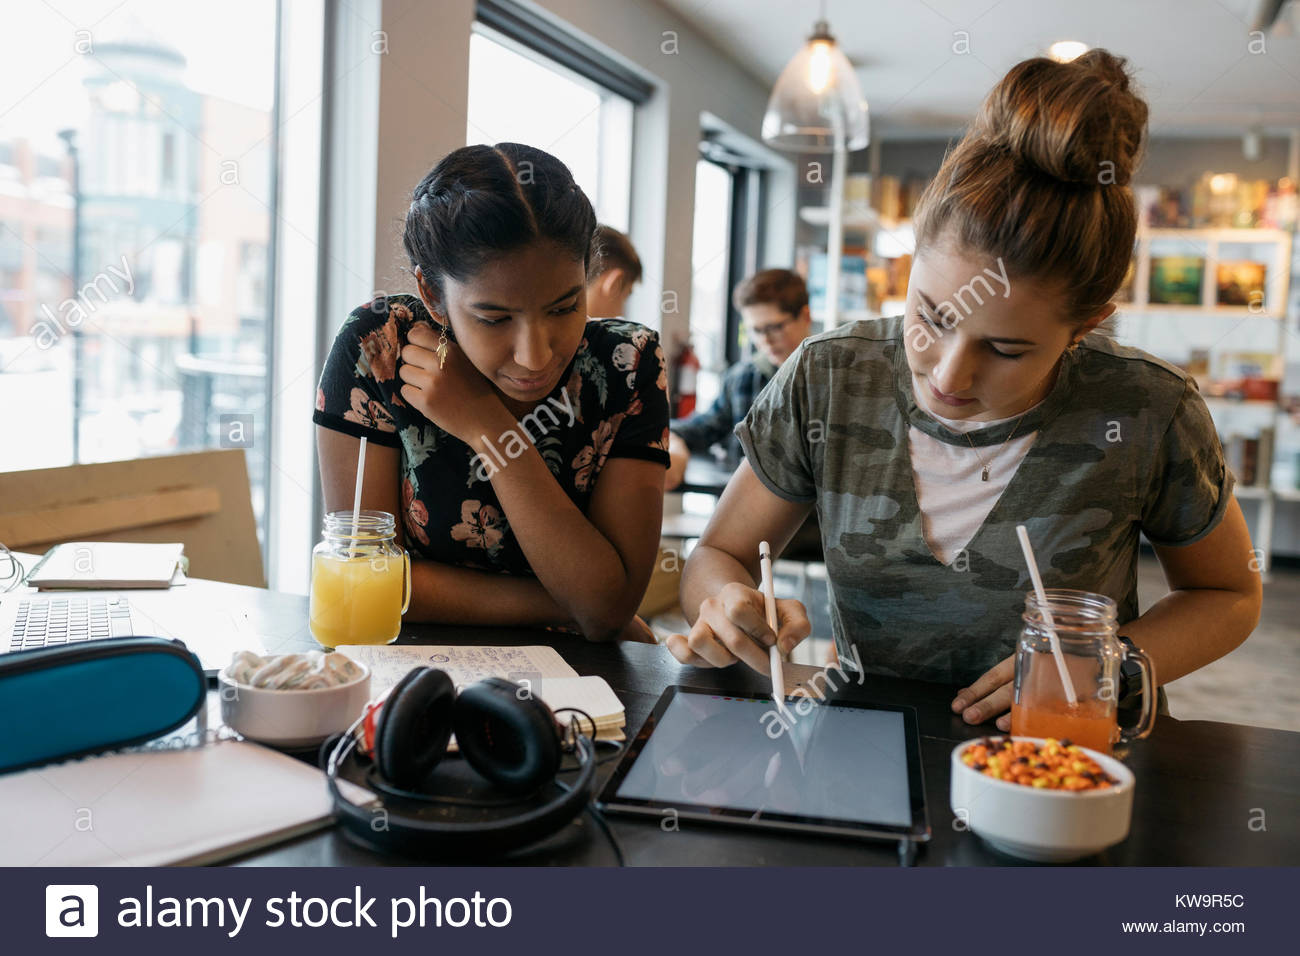 High school girl students studying,using stylus on digital tablet in cafe Stock Photo